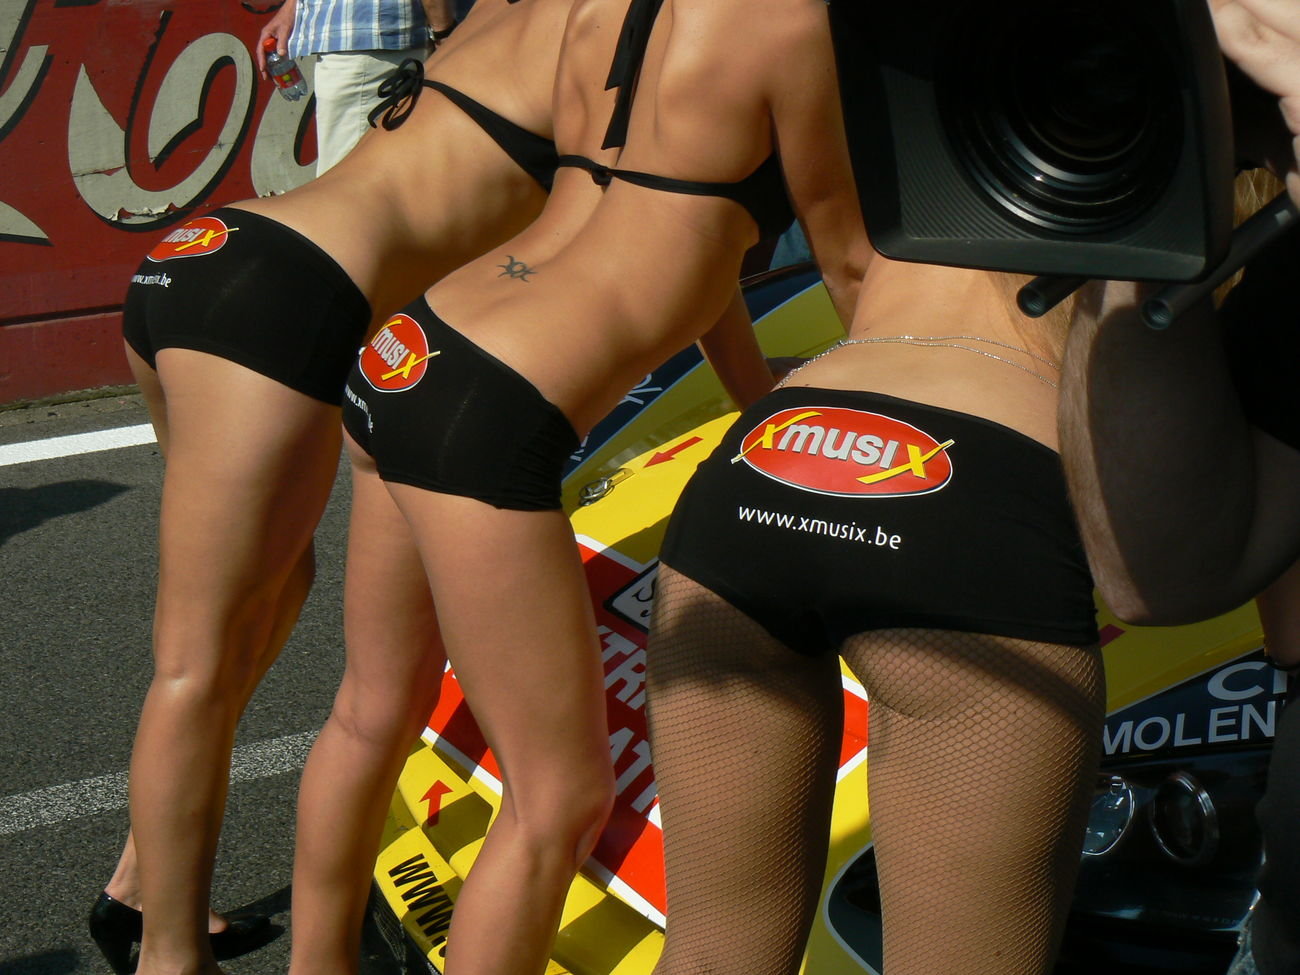 Adult Adults Only Competition Day Human Leg Low Section Only Women Outdoors People Sport The Drive Zolder Circuit The Drive.